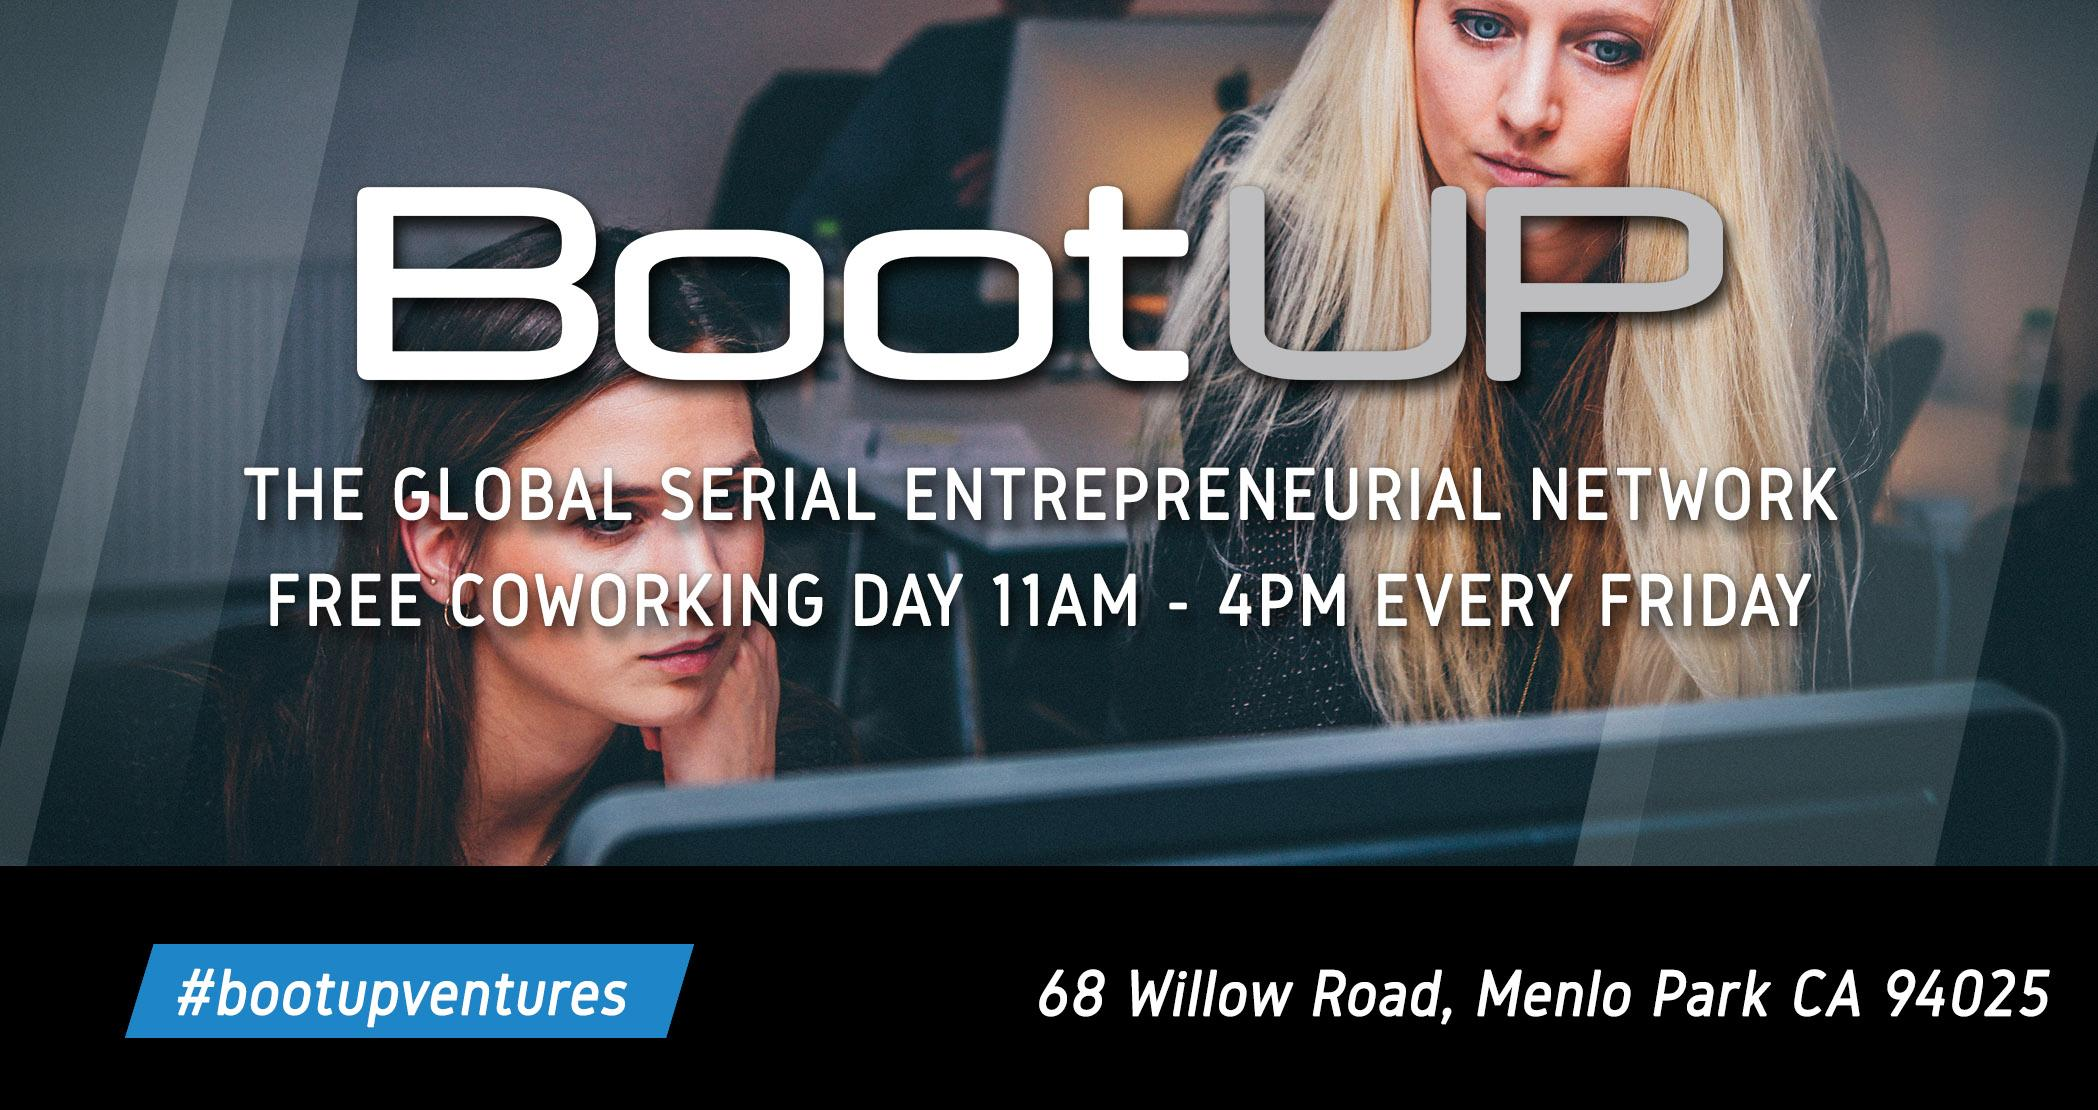 BootUP Free Co-Working Day (Every Friday)